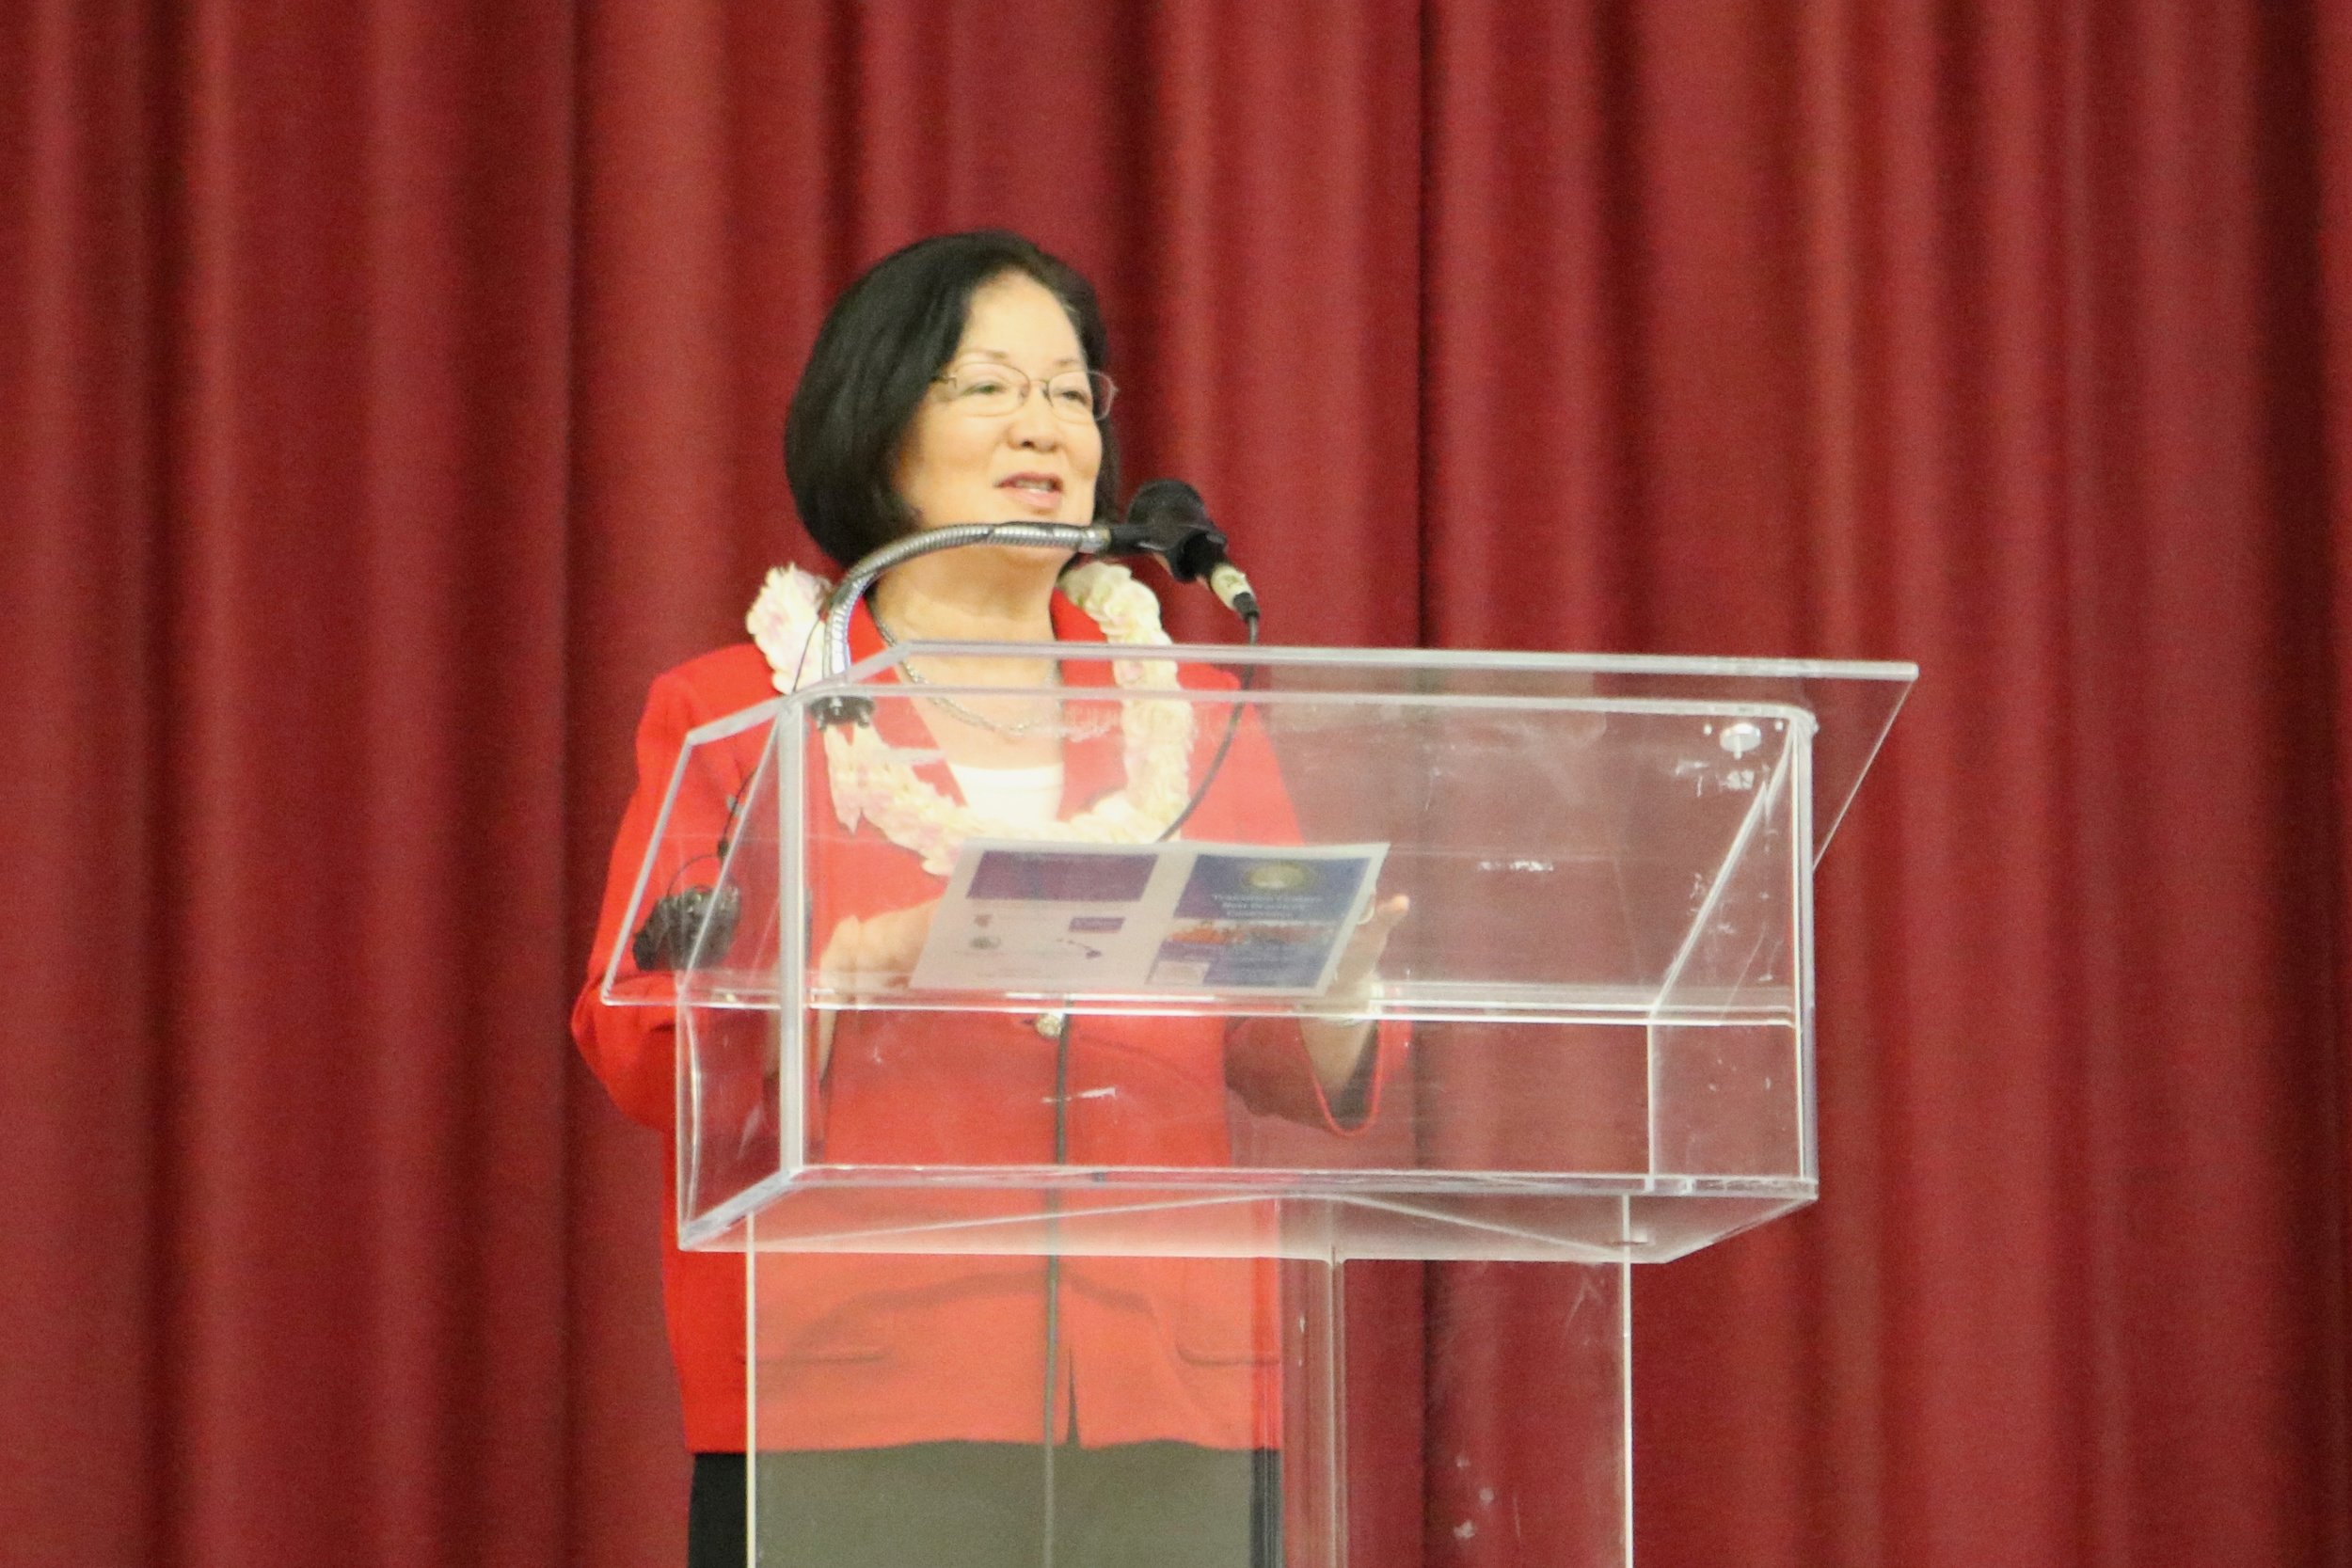 The conference kicked off with opening remarks from United States Senator Mazie Hirono.